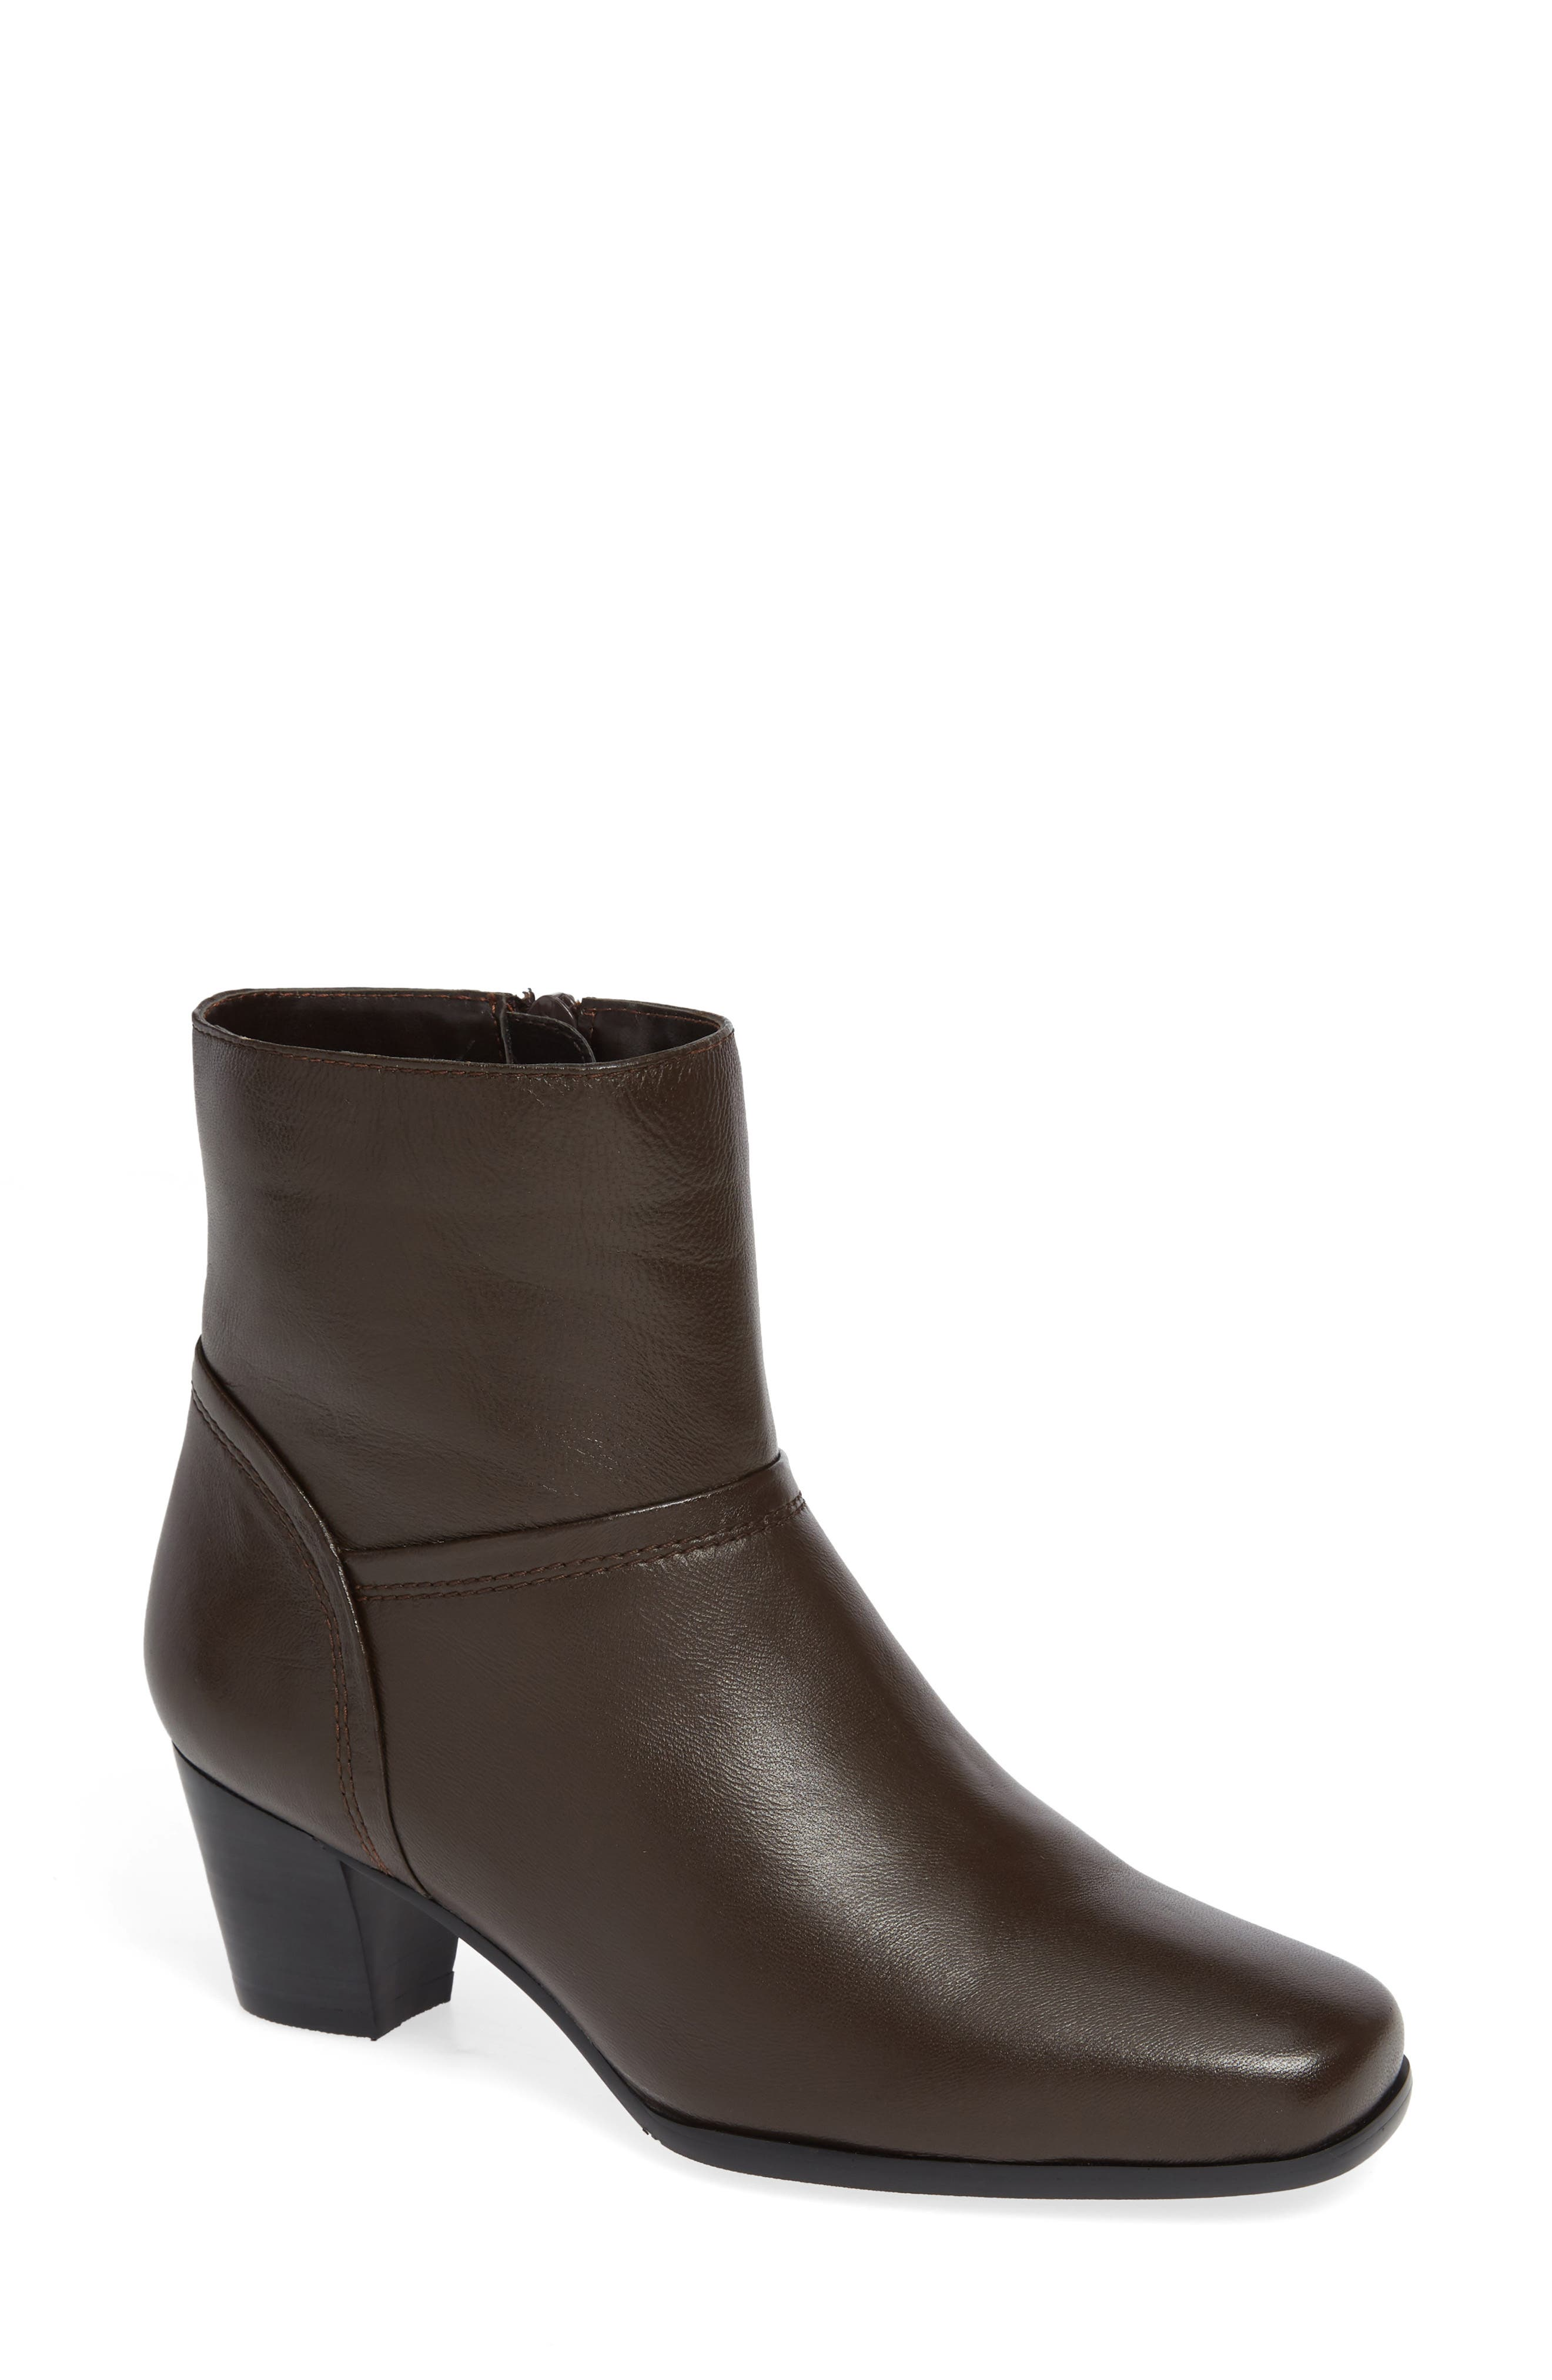 David Tate Model Bootie, Brown